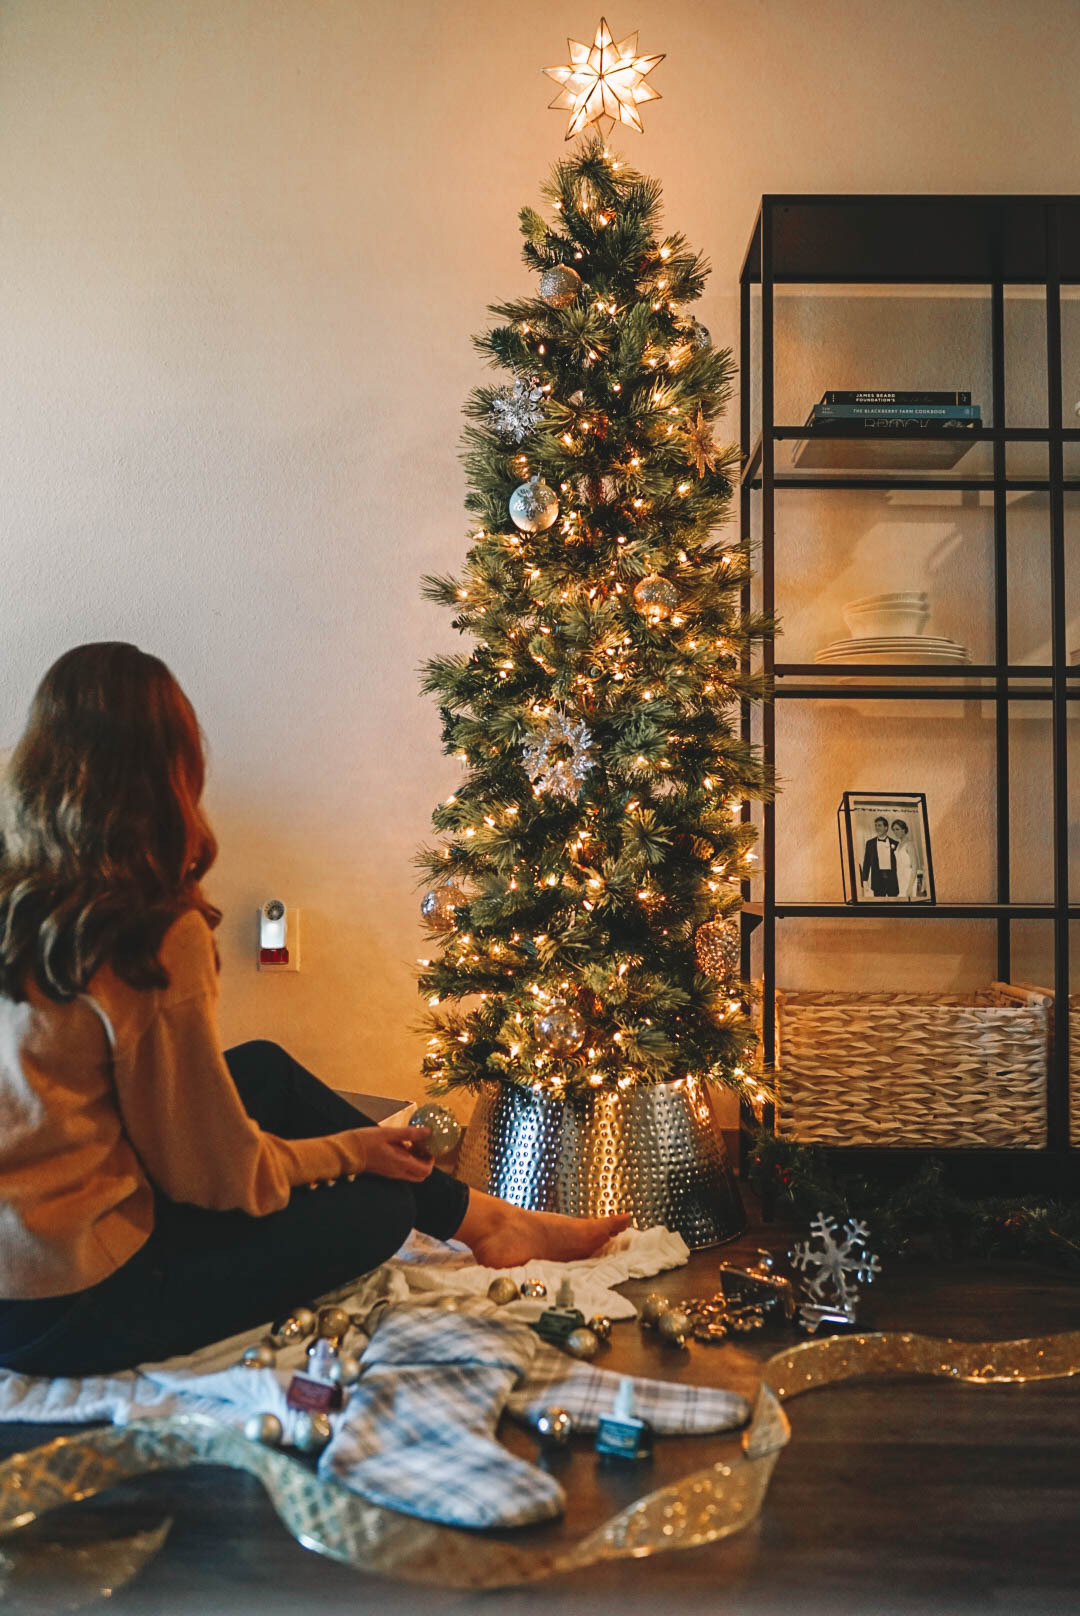 woman sitting in front of Christmas tree with lights and ornaments